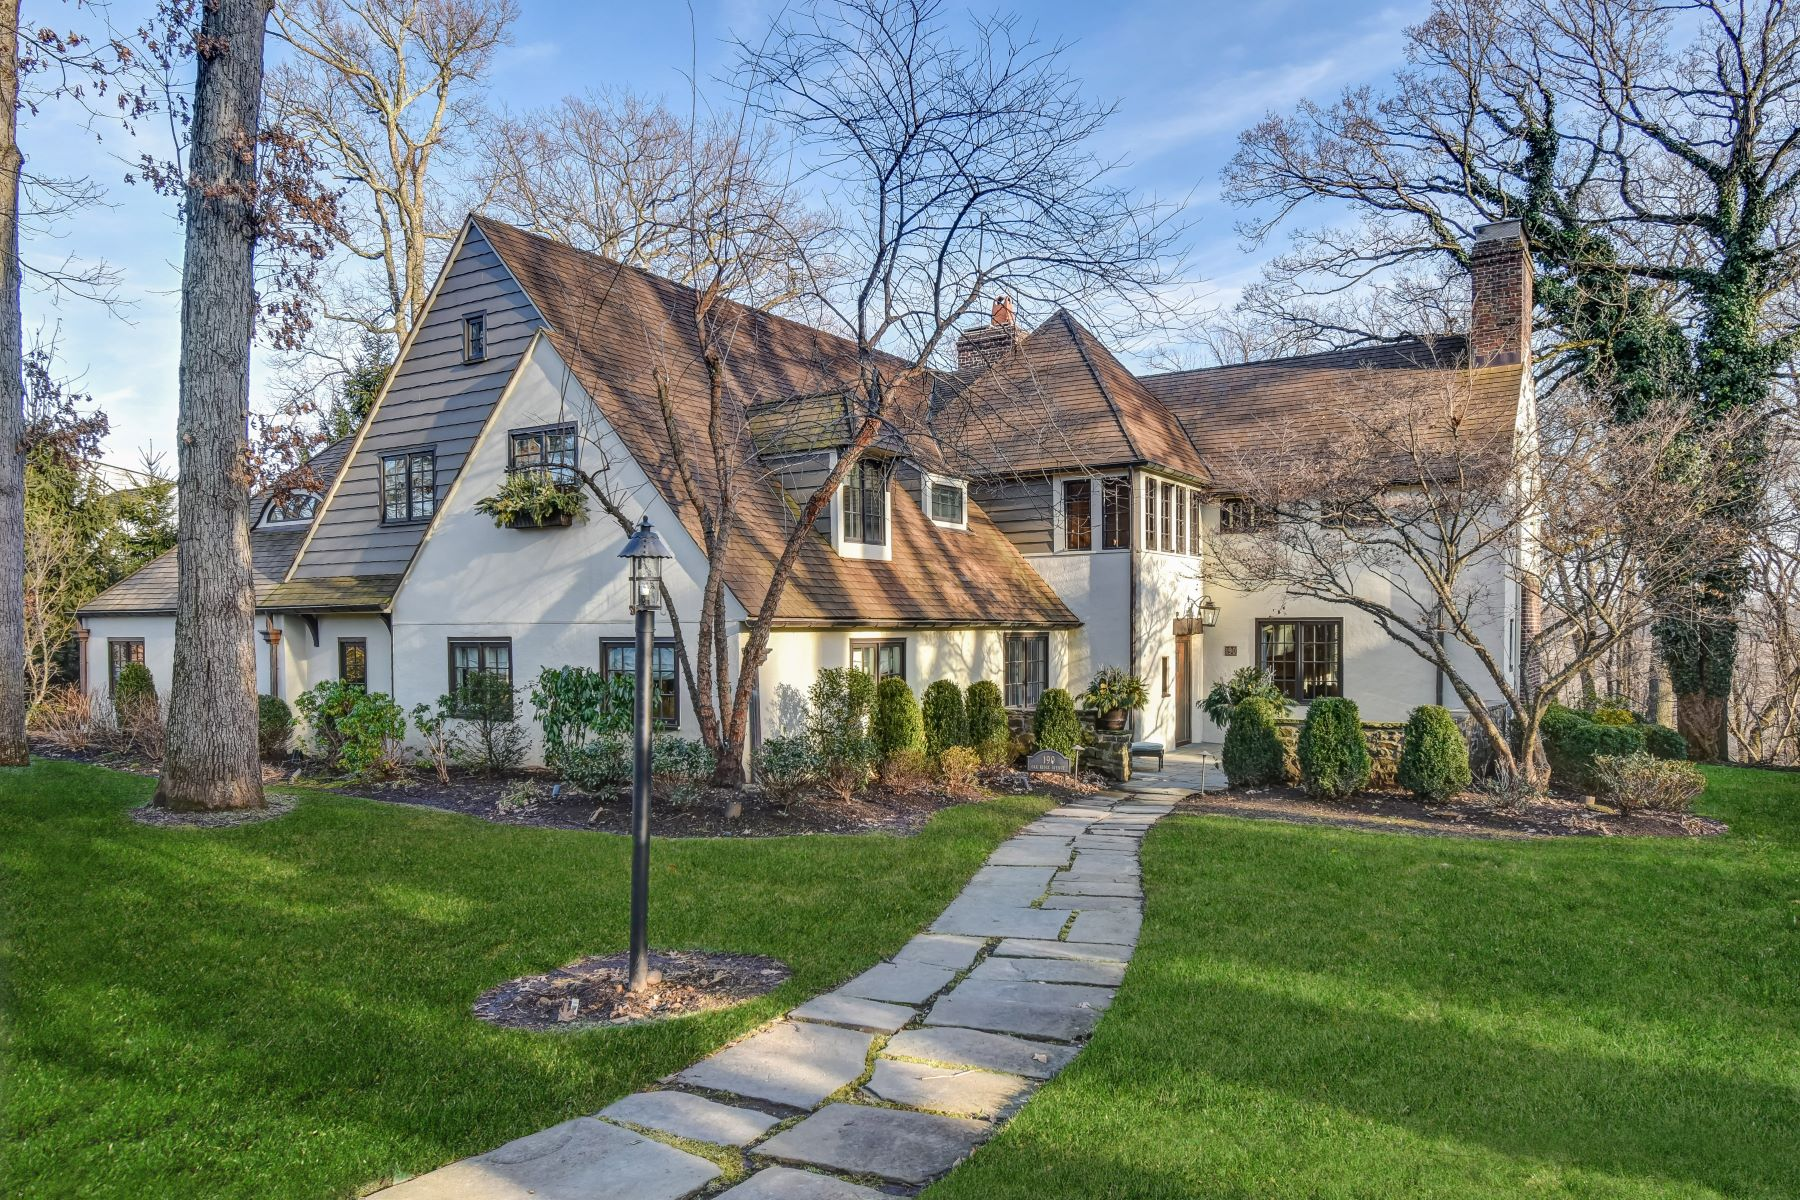 Single Family Homes for Active at Exquisite French Normandy Manor 190 Oak Ridge Avenue Summit, New Jersey 07901 United States